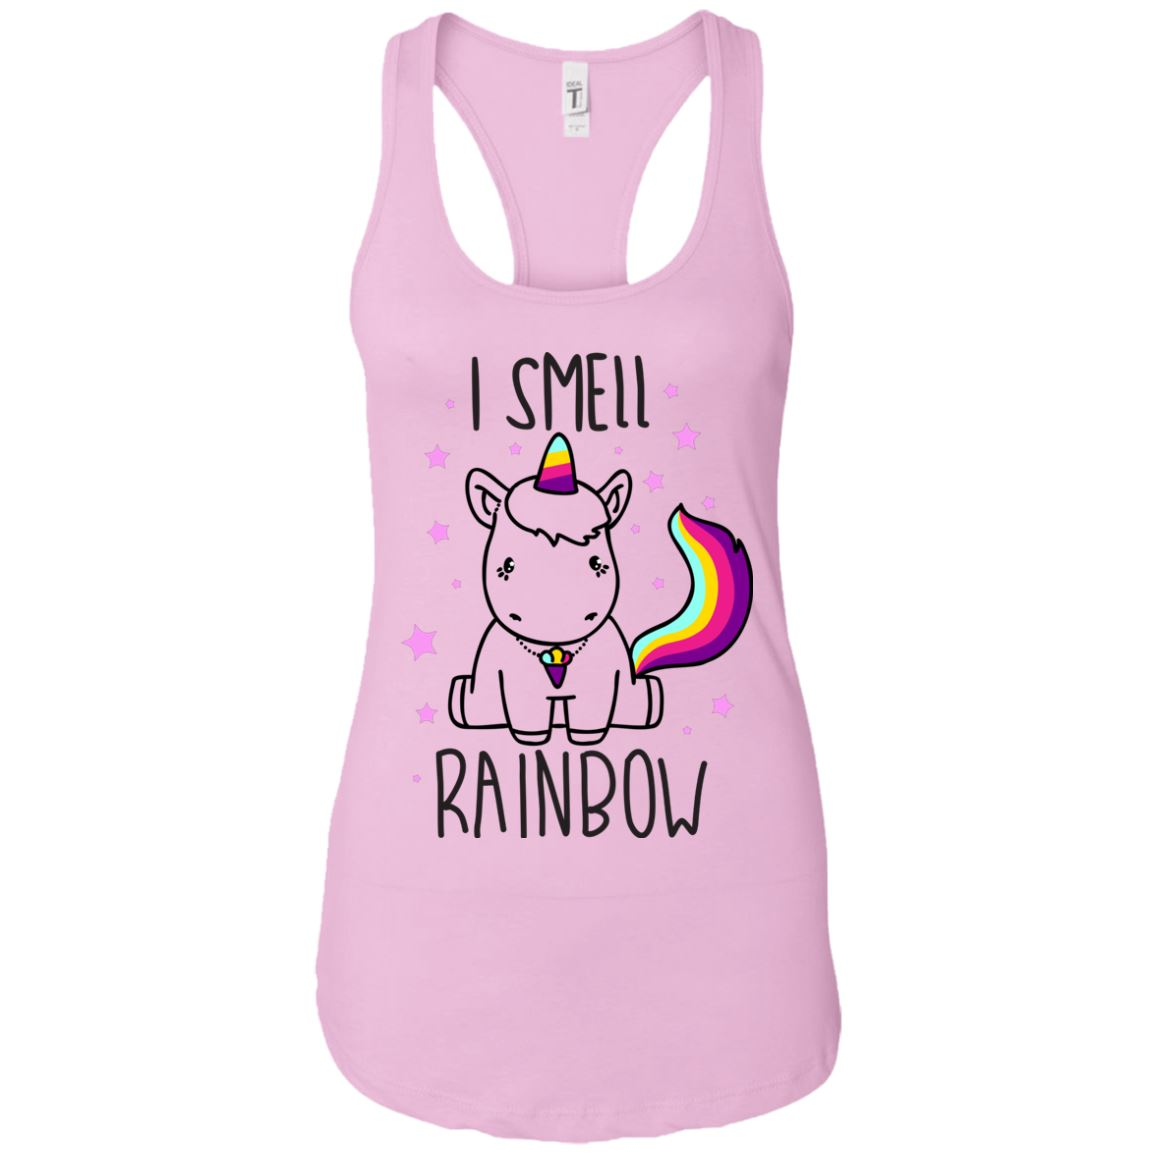 I Smell Rainbow Women's Racerback Tank Apparel Lilac X-Small